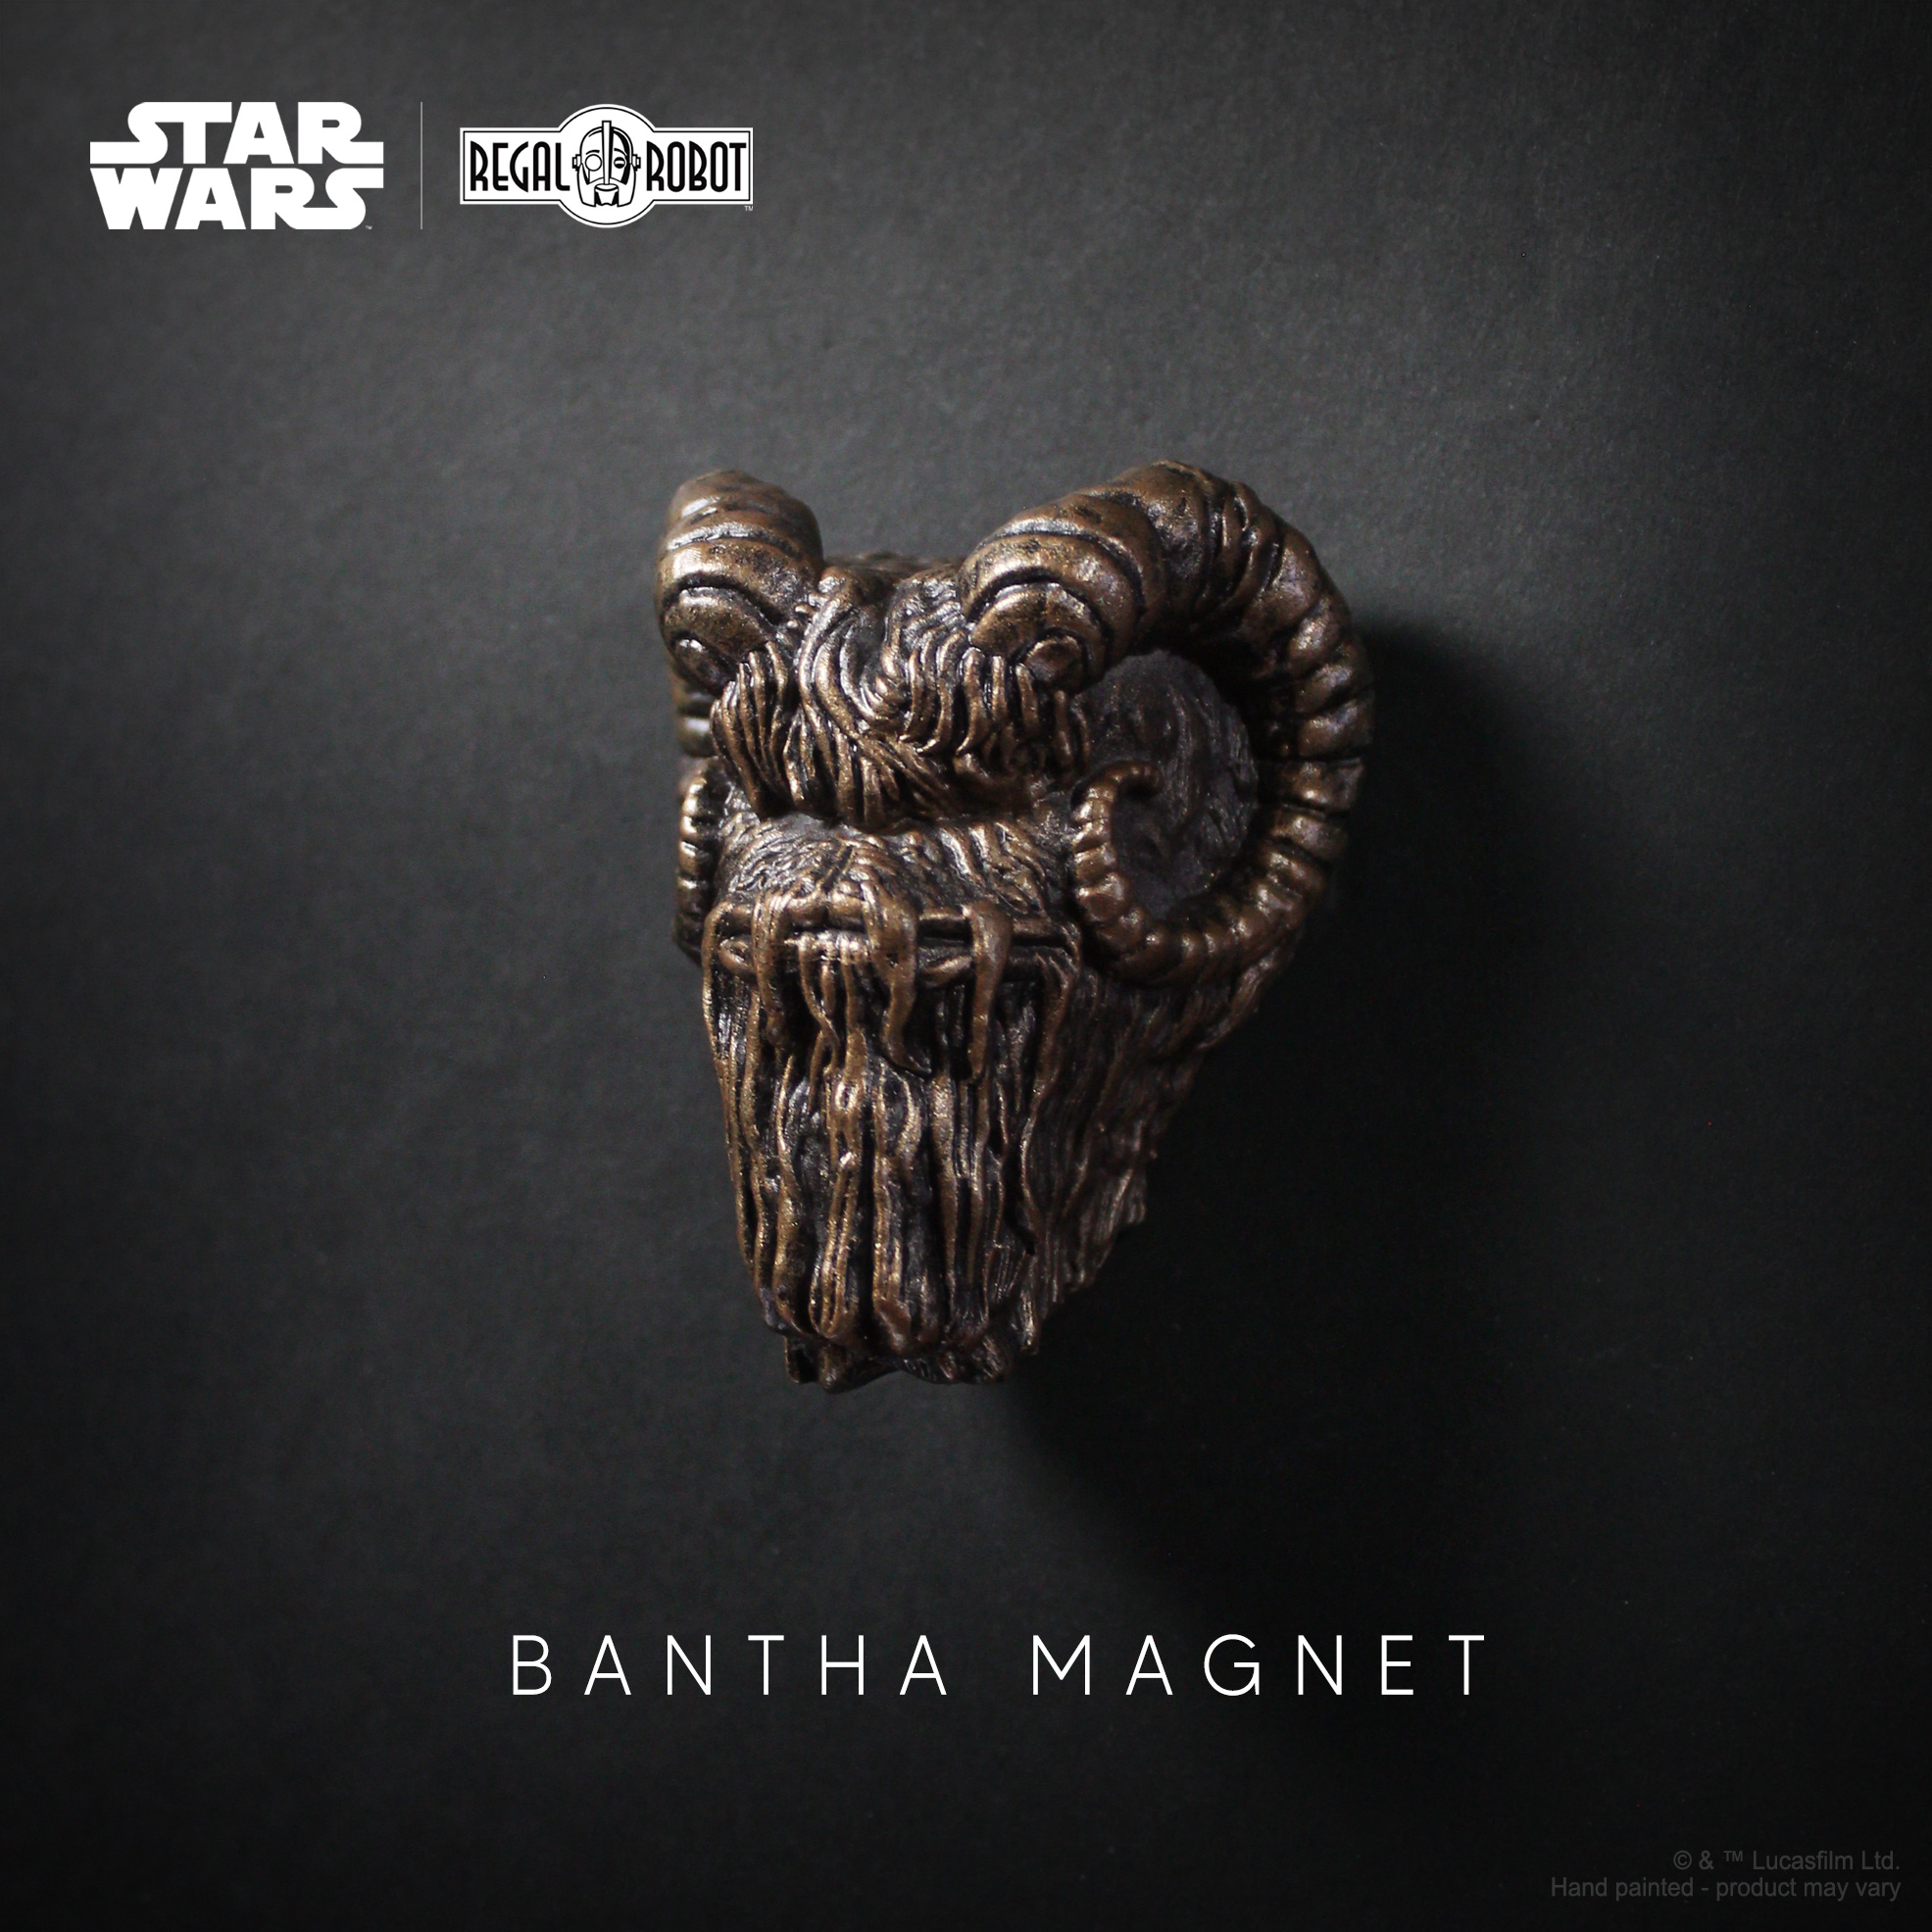 Star Wars Beast Collection magnet series